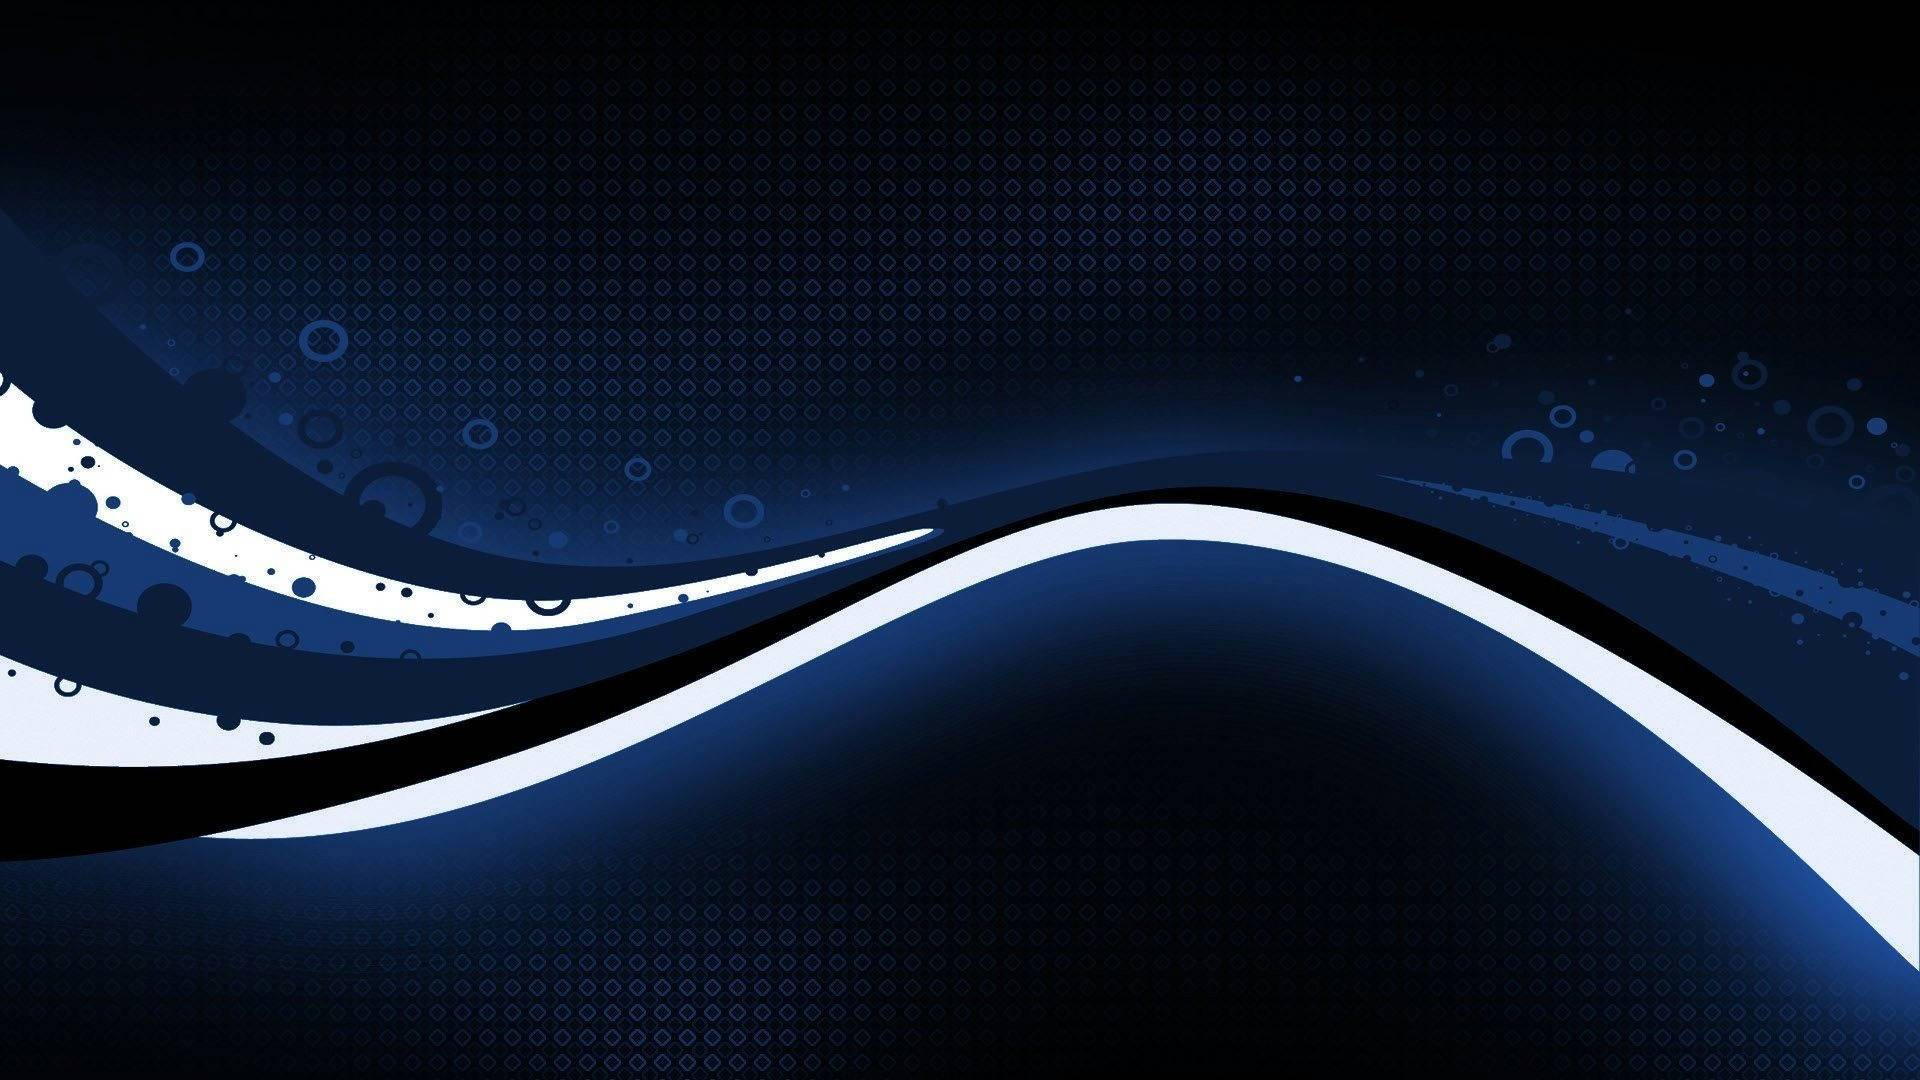 http://2.bp.blogspot.com/-fQMgDSDCCBU/TxKu8-S-x8I/AAAAAAAAG40/K2DZJiYMdis/s1920/abstract_dark_wallpaper-9.jpg